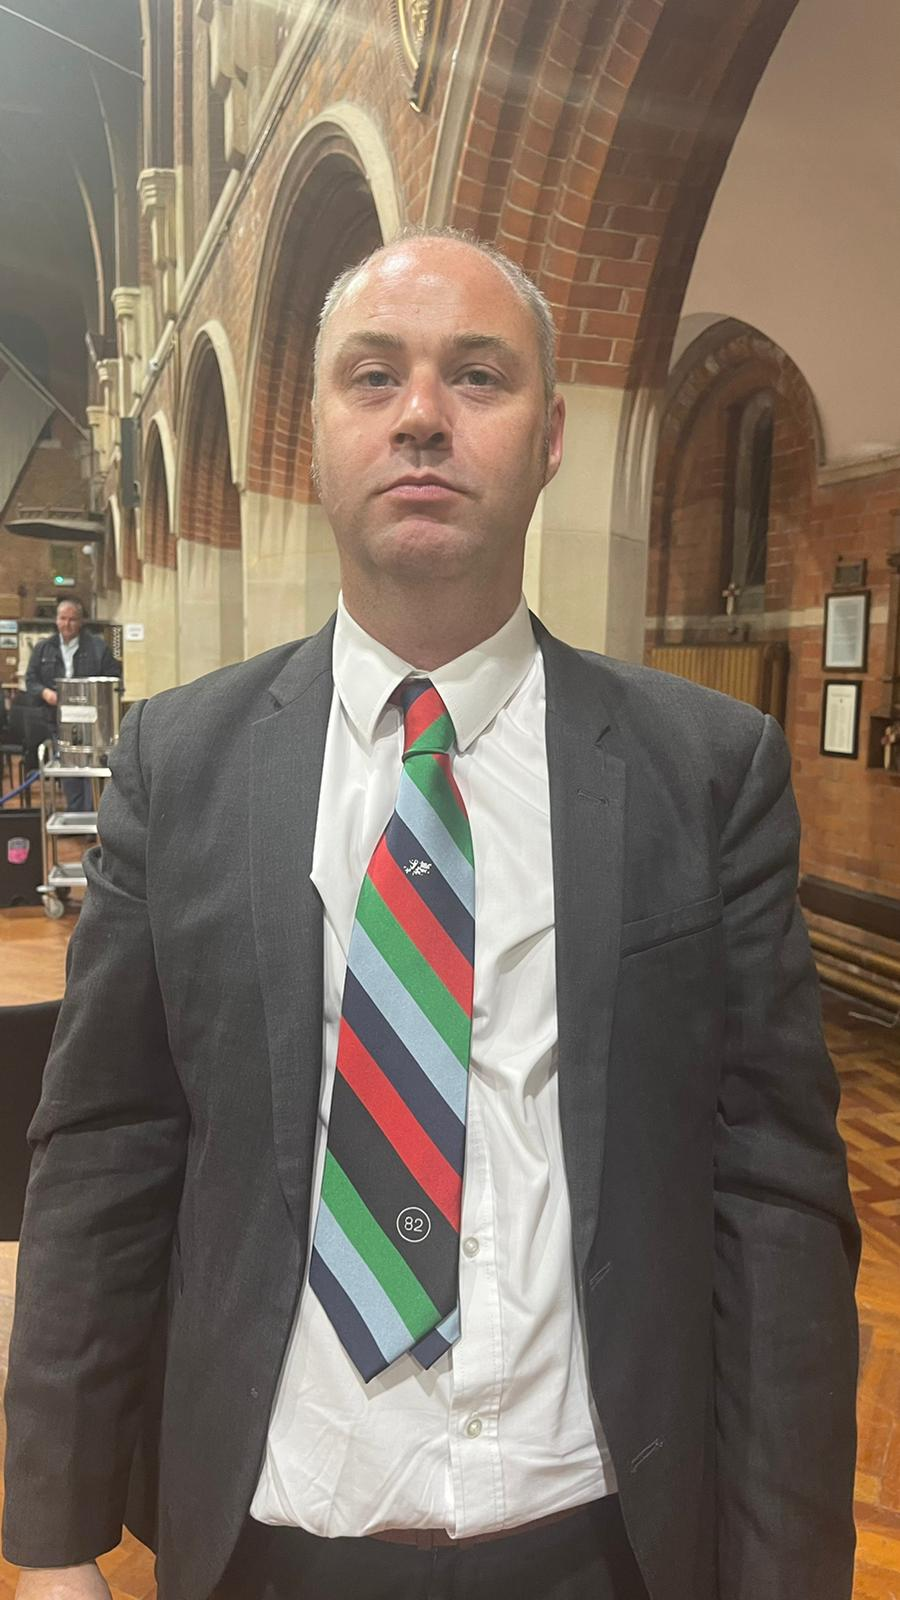 Cllr Mark Prenter wearing a tie that commemorates the Falklands conflict